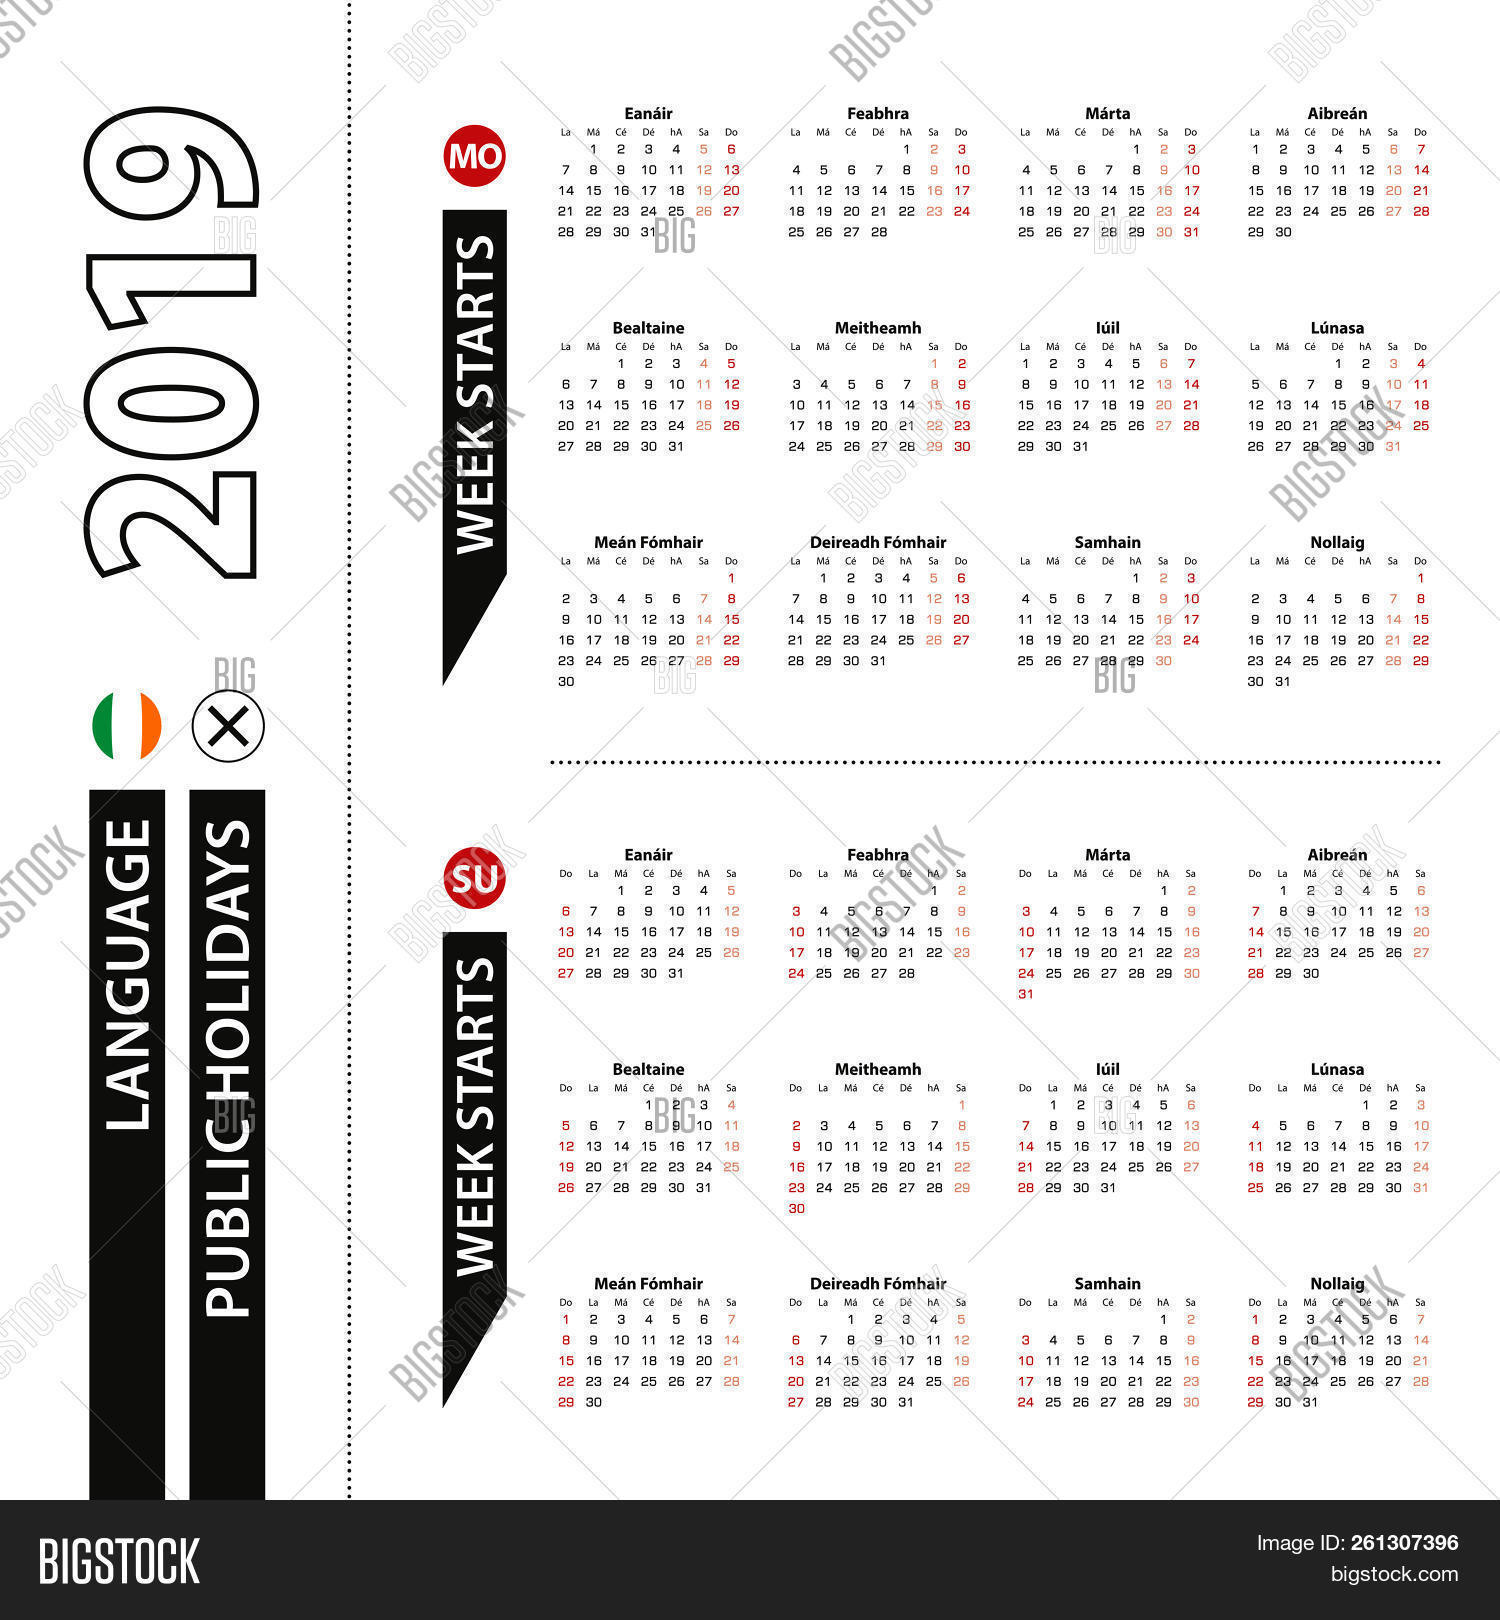 two versions of 2019 calendar in irish week starts from monday and week starts from